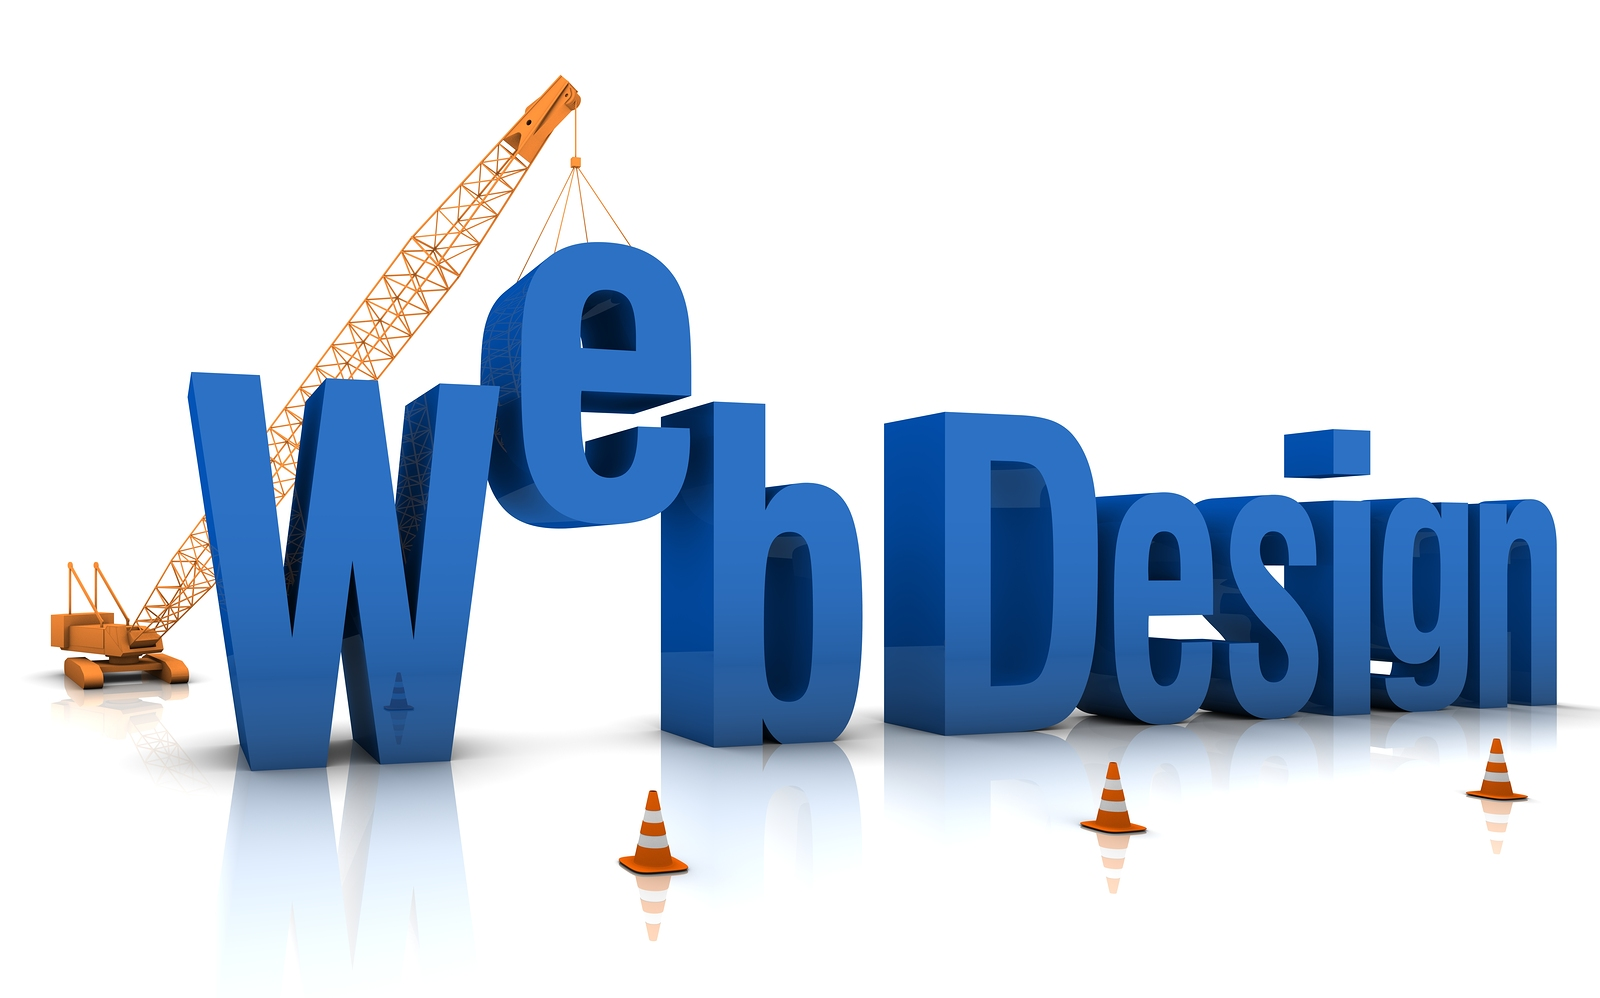 Top 5 Reasons For a Website Redesign